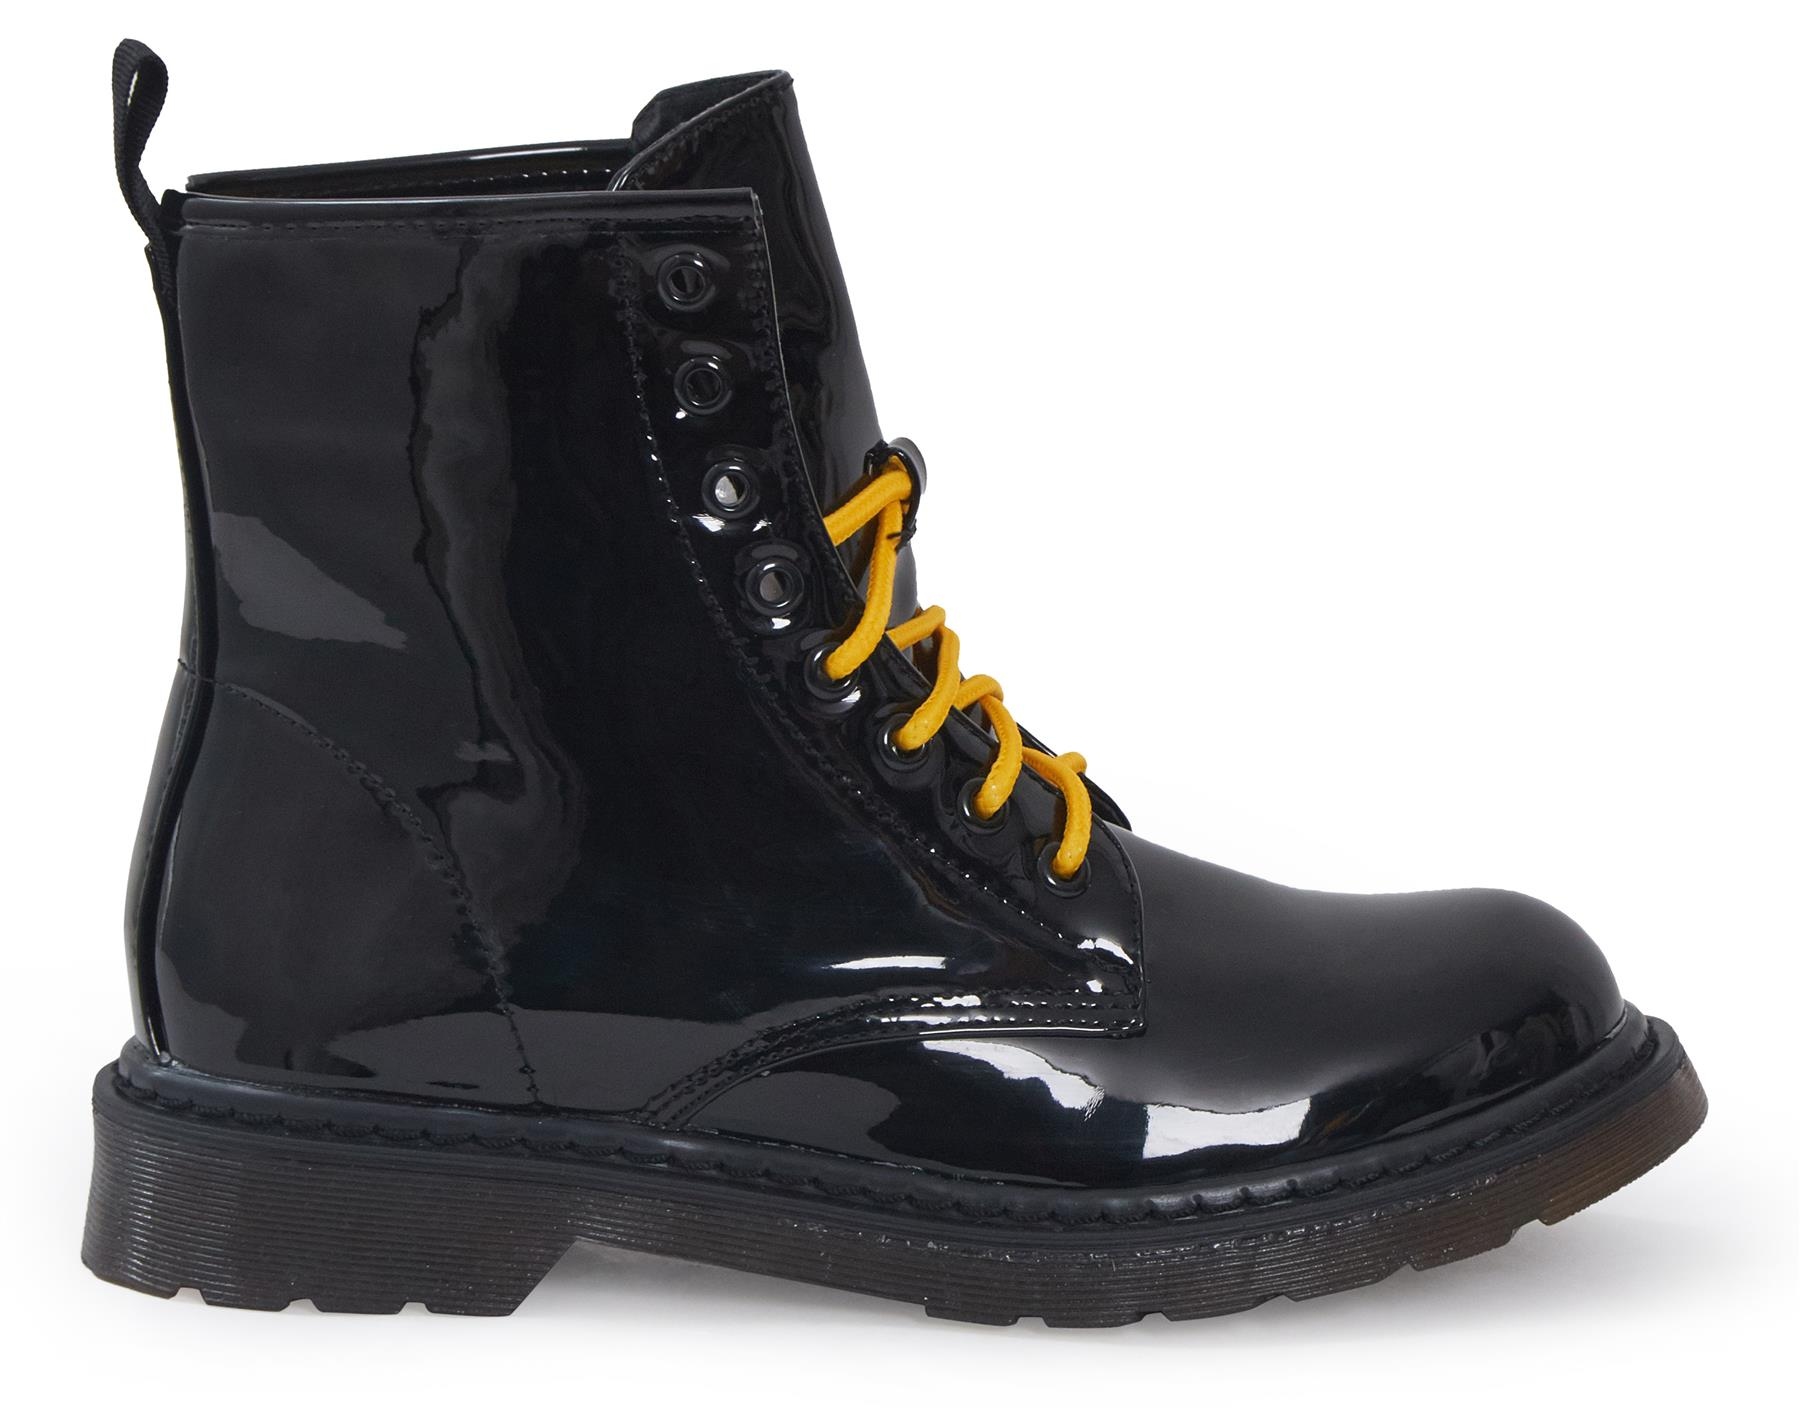 Shelikes-Womens-Ankle-Boots-Vintage-Combat-Army-Flat-Lace-Up-Work-Military-Biker thumbnail 10